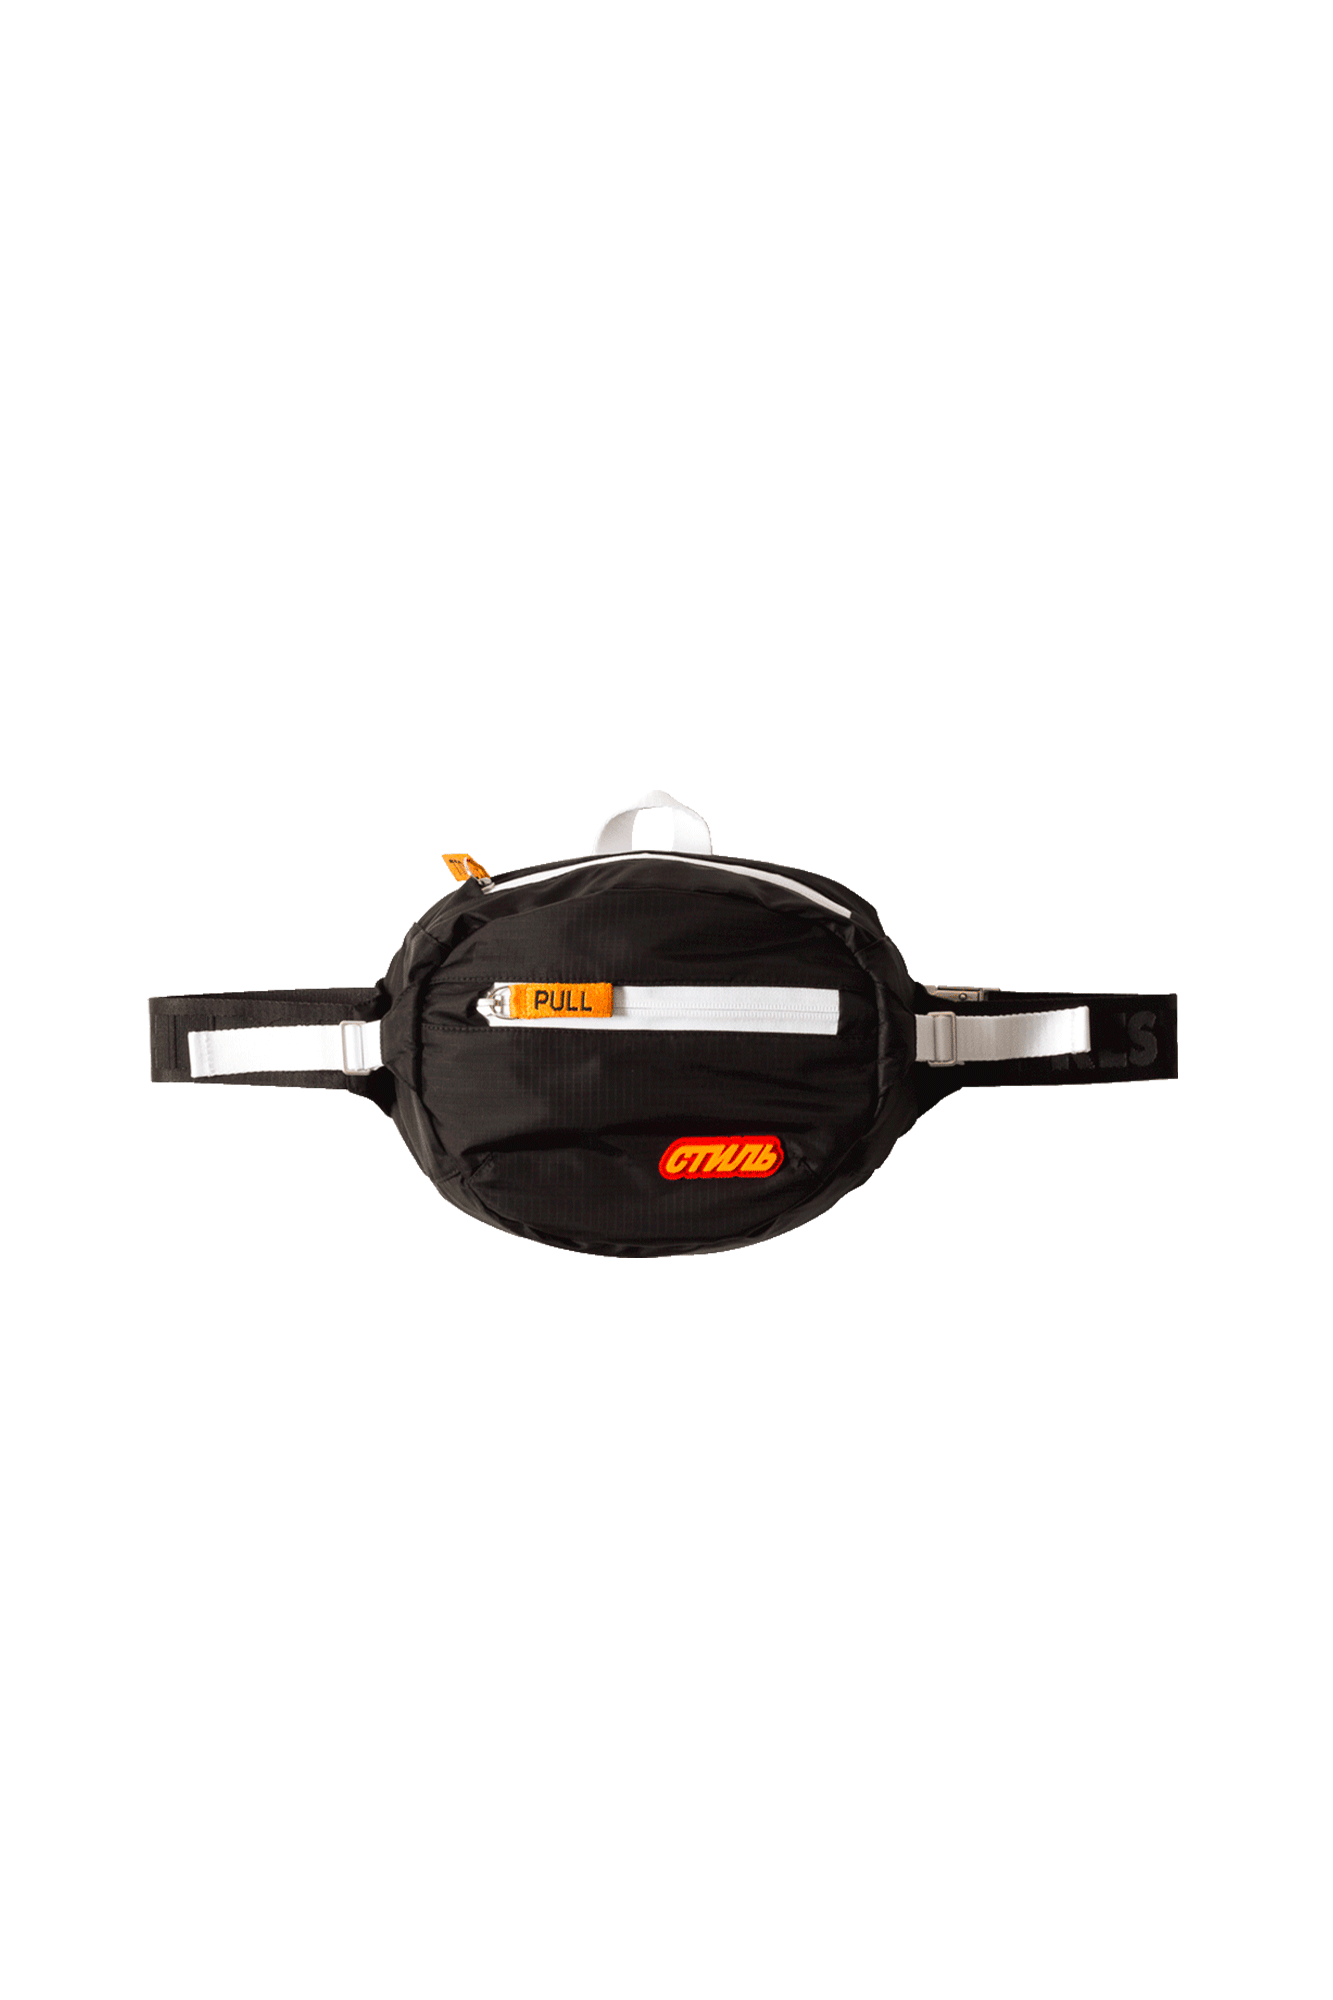 CTNMB Padded Fanny Pack Orange Orange Black